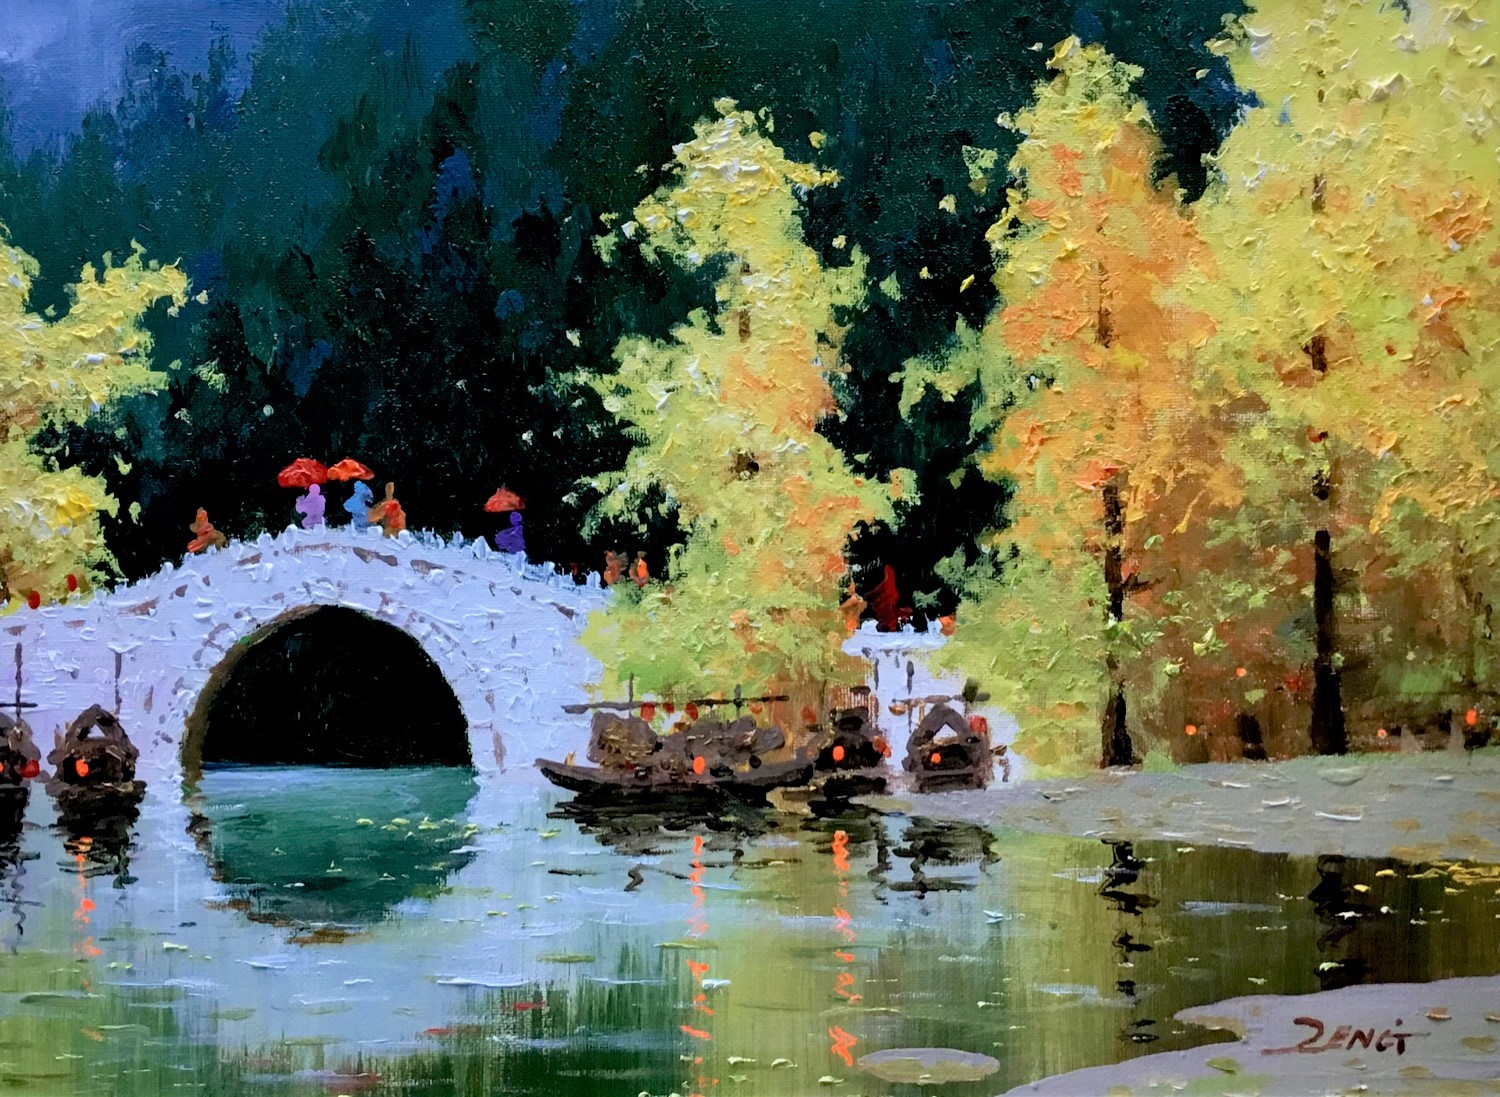 Uncle Zeng-Yellow Trees- Original Oil on Canvas 12x16